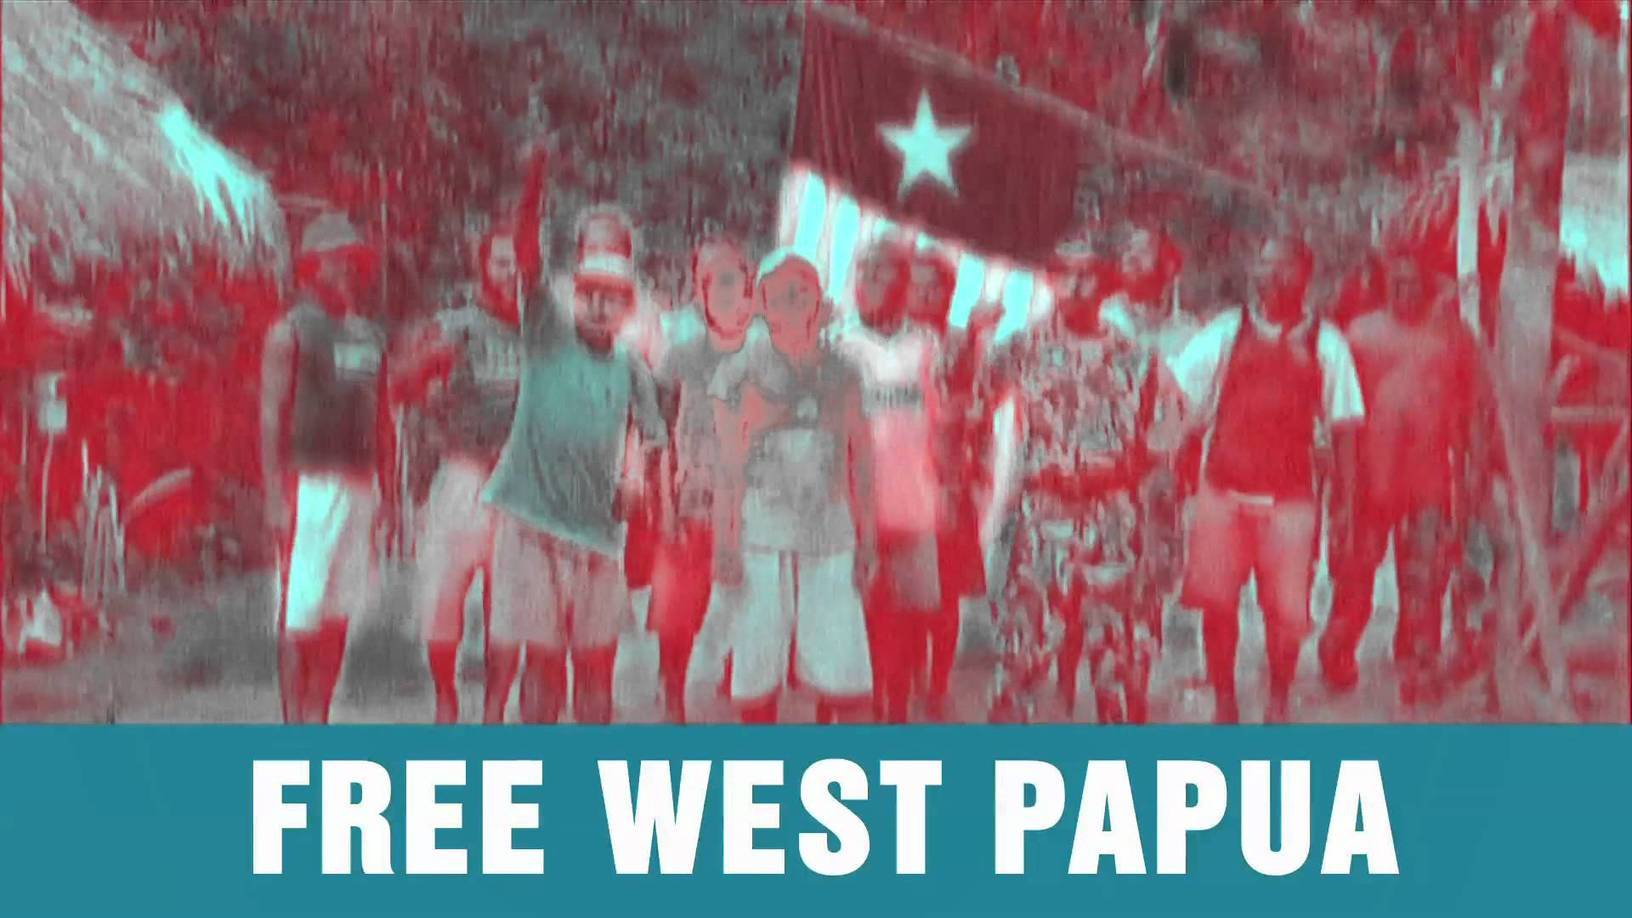 Merdeka! The Struggle for Freedom in West Papua | PAPUA MERDEKA ATAS DASAR KEADILAN